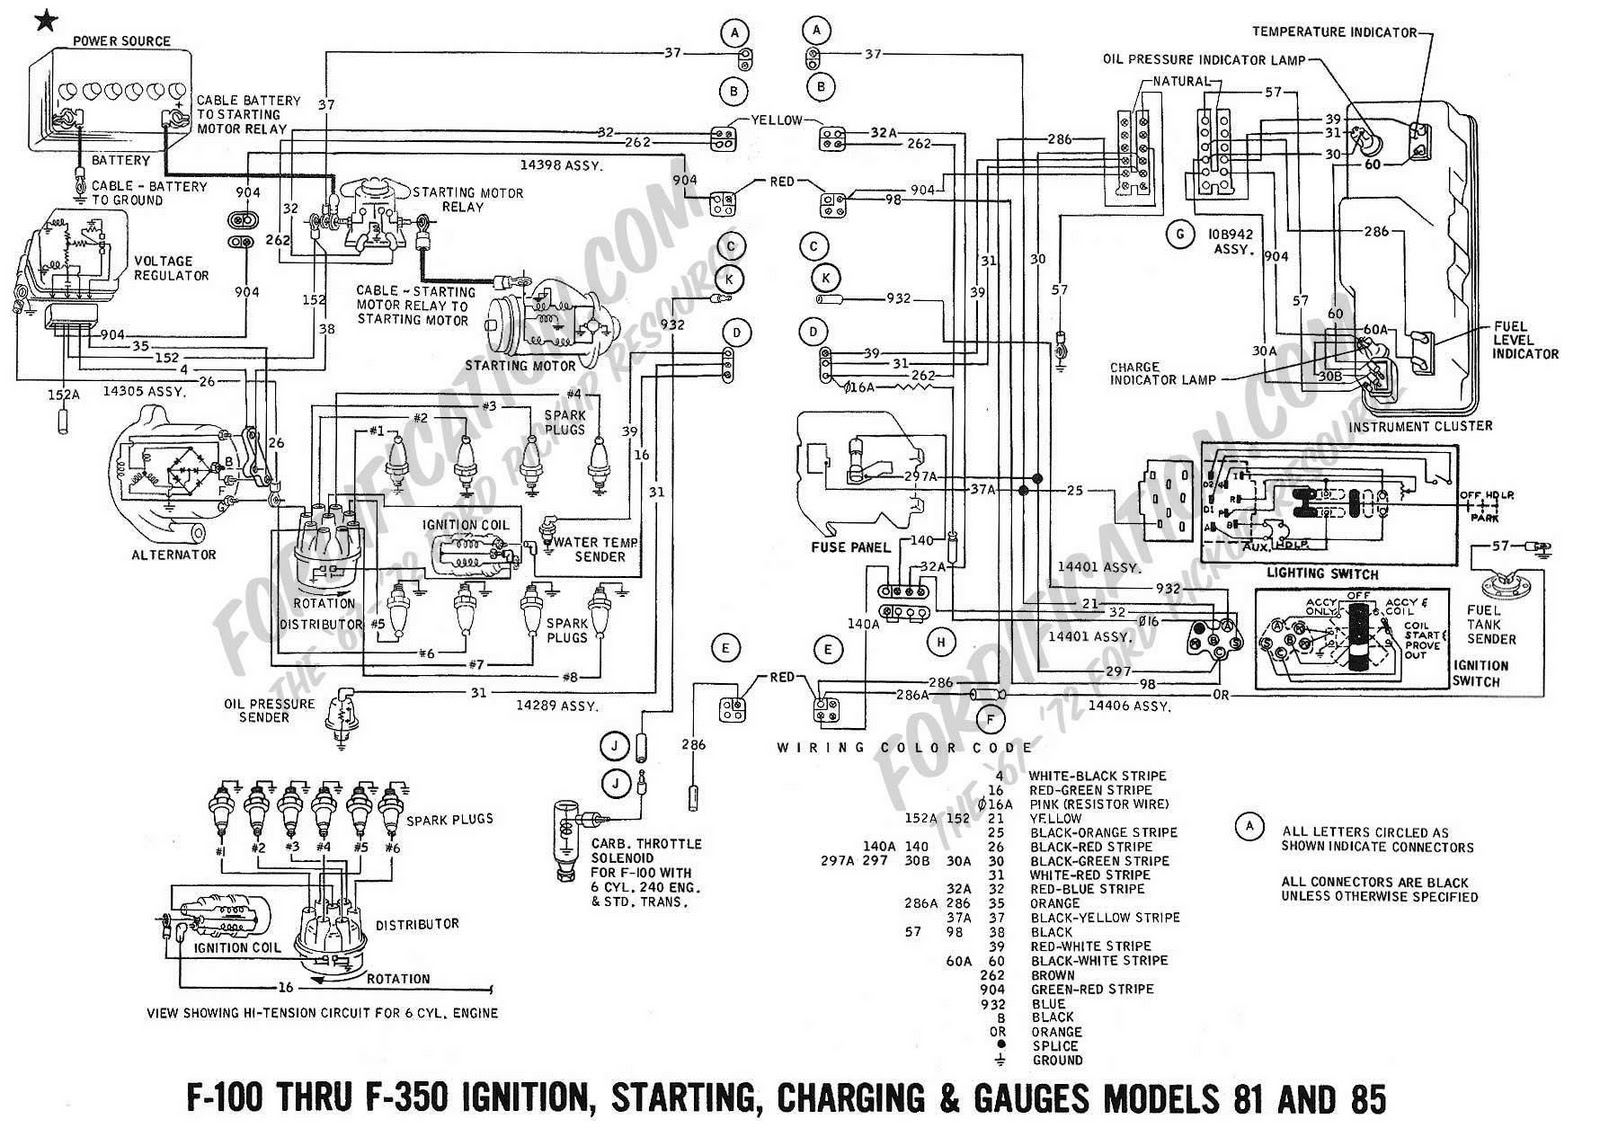 302 engine diagram wiring diagramford 302 ignition diagram wiring diagram online1970 ford 302 coil wiring box wiring diagram ford 302